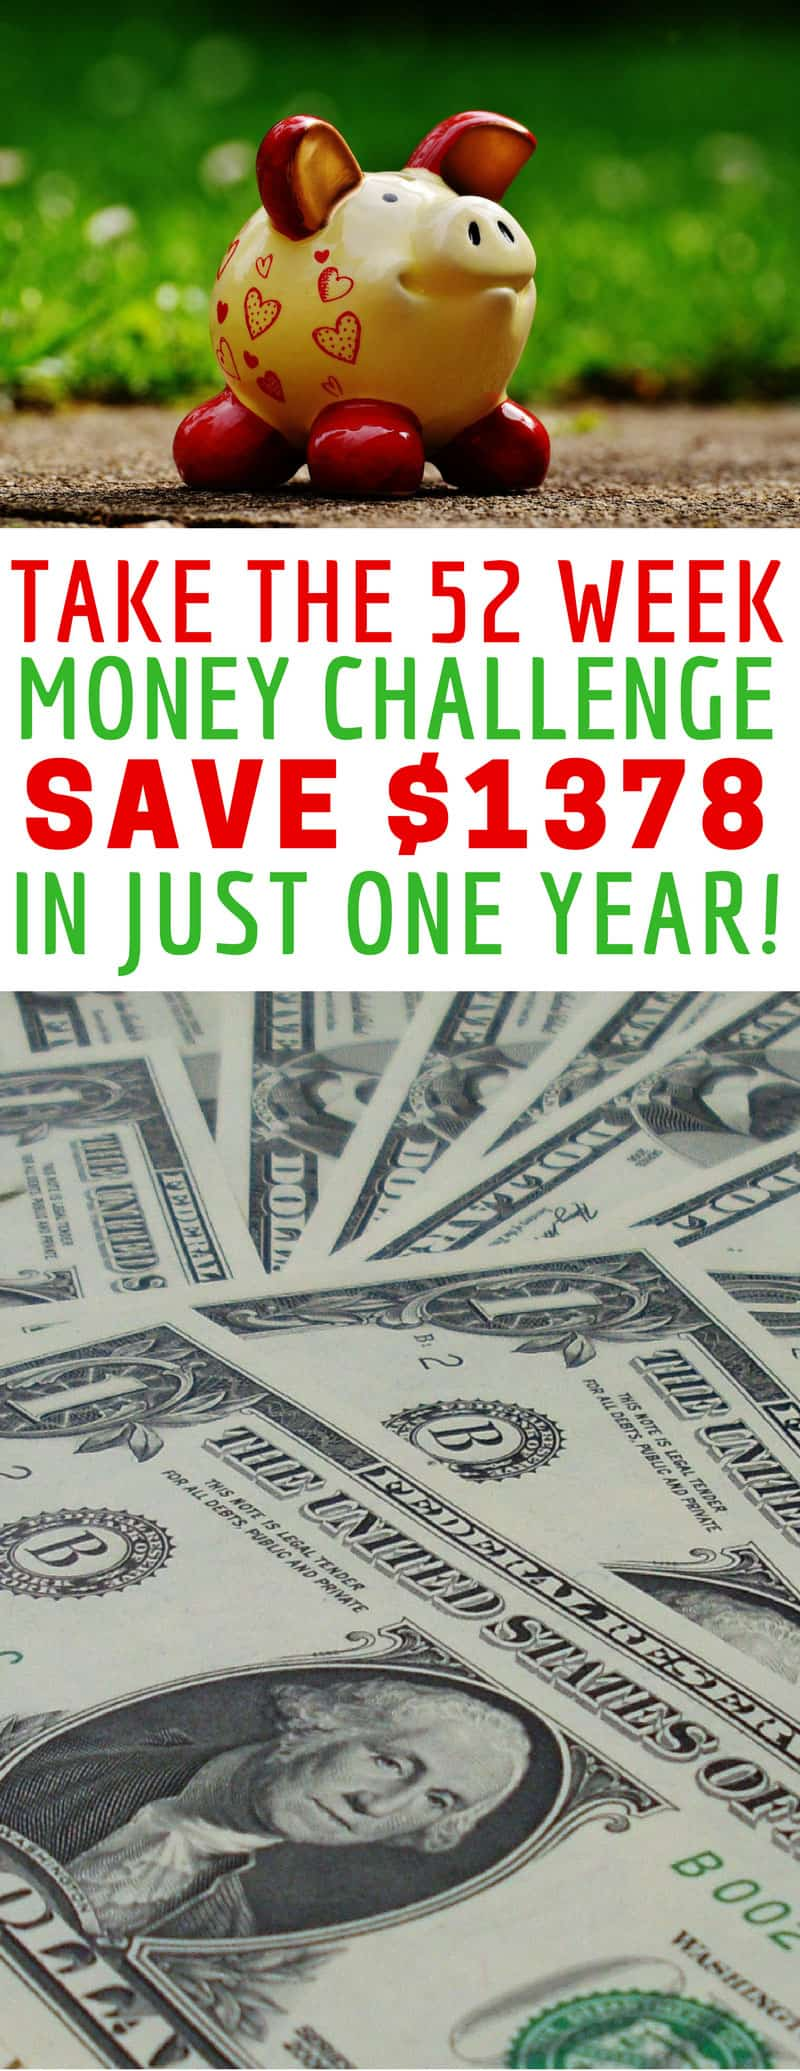 Who knew it was so easy to save $1378 in just one year! Love this 52 week money challenge! Thanks for sharing!